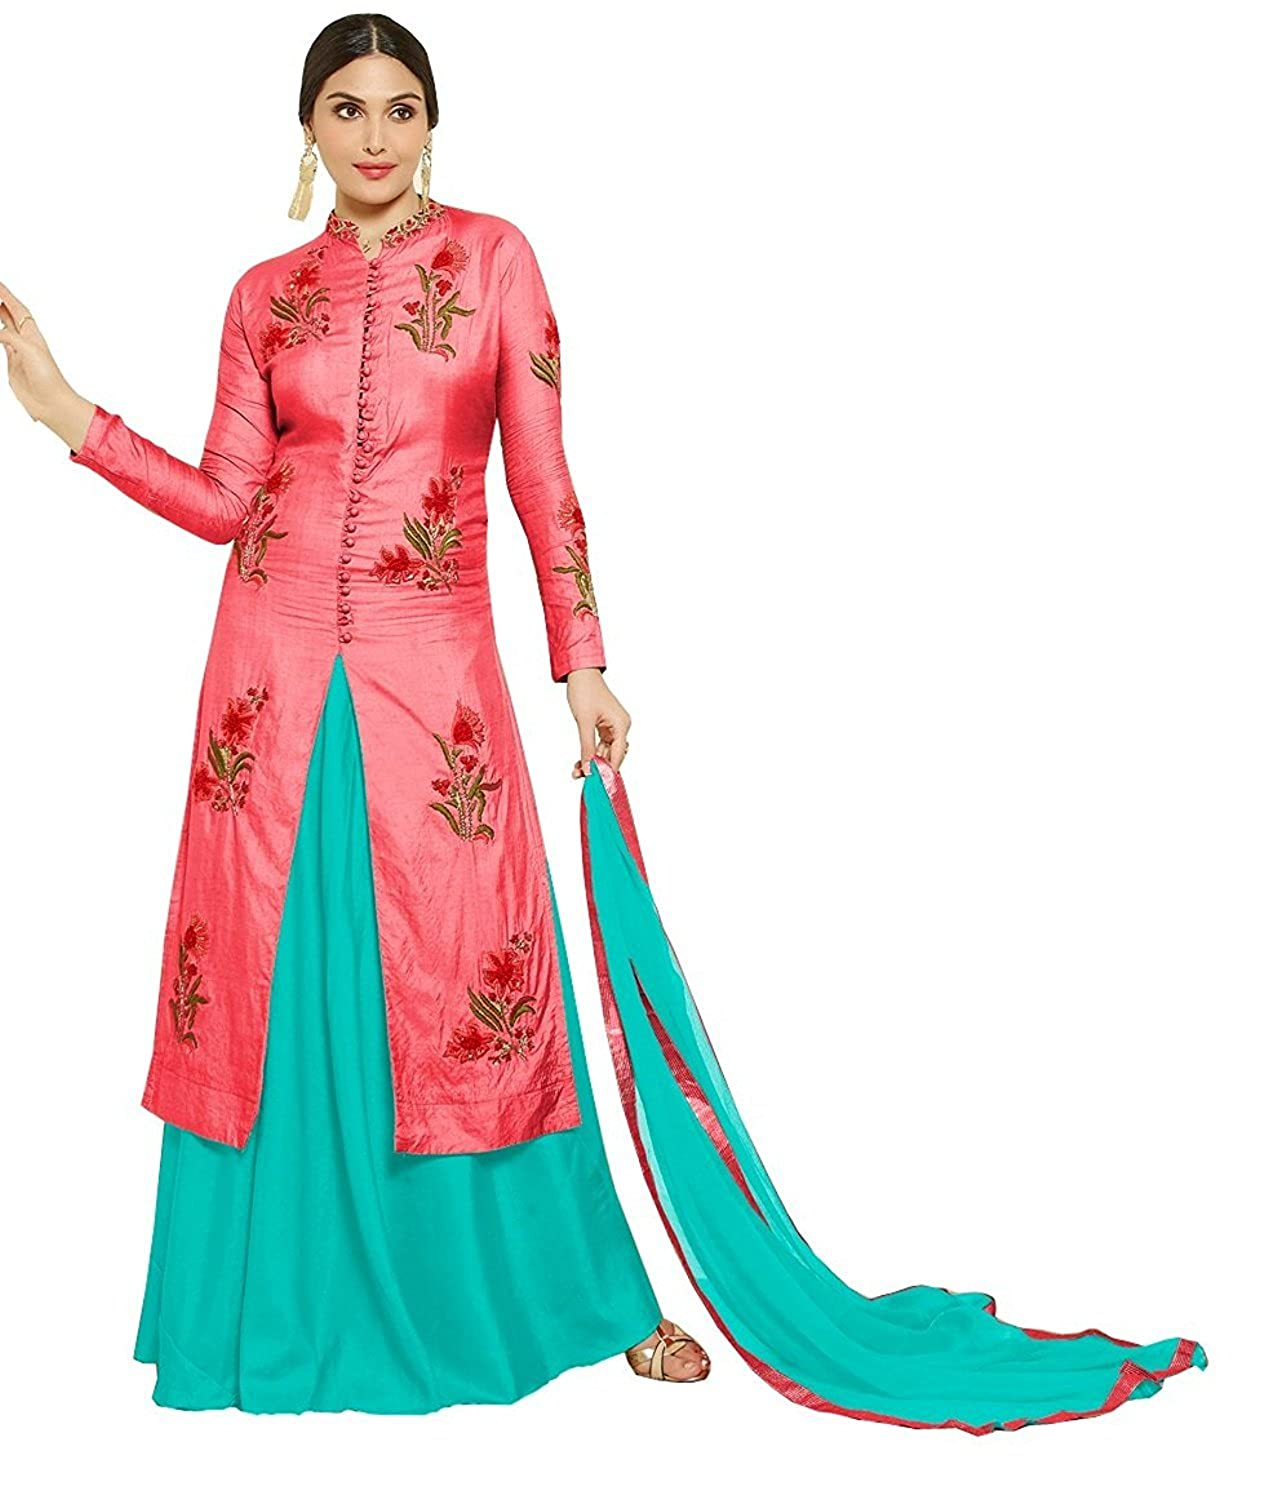 Amazon: Women's Pink Cotton Embroidered salwar suit two bottom (Salwar) @ Rs.989/-